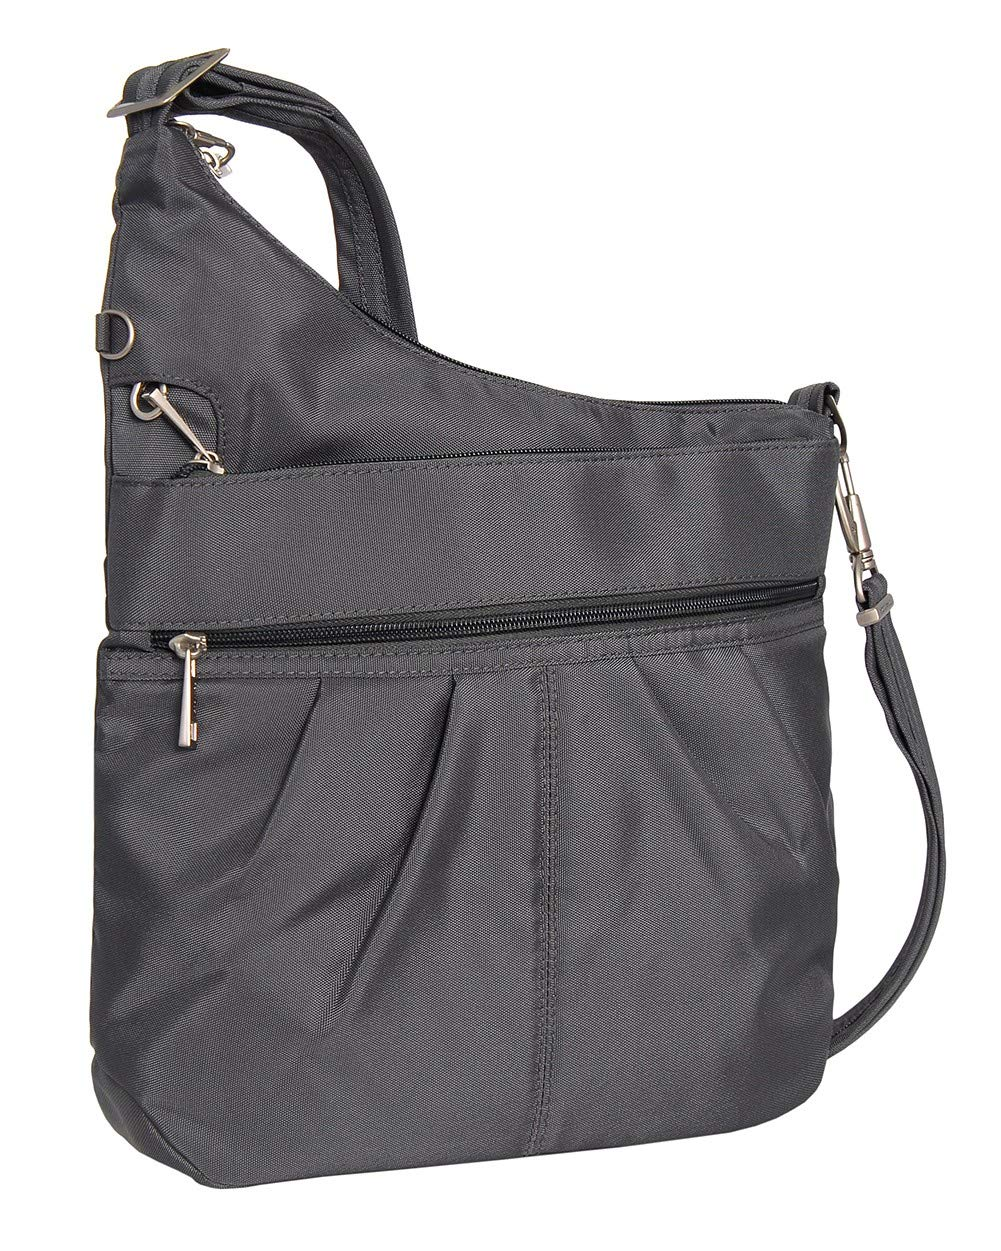 Travelon Anti-Theft Signature 3 Compartment Crossbody (One_Size, DARK GREY W/FLORAL LINING)